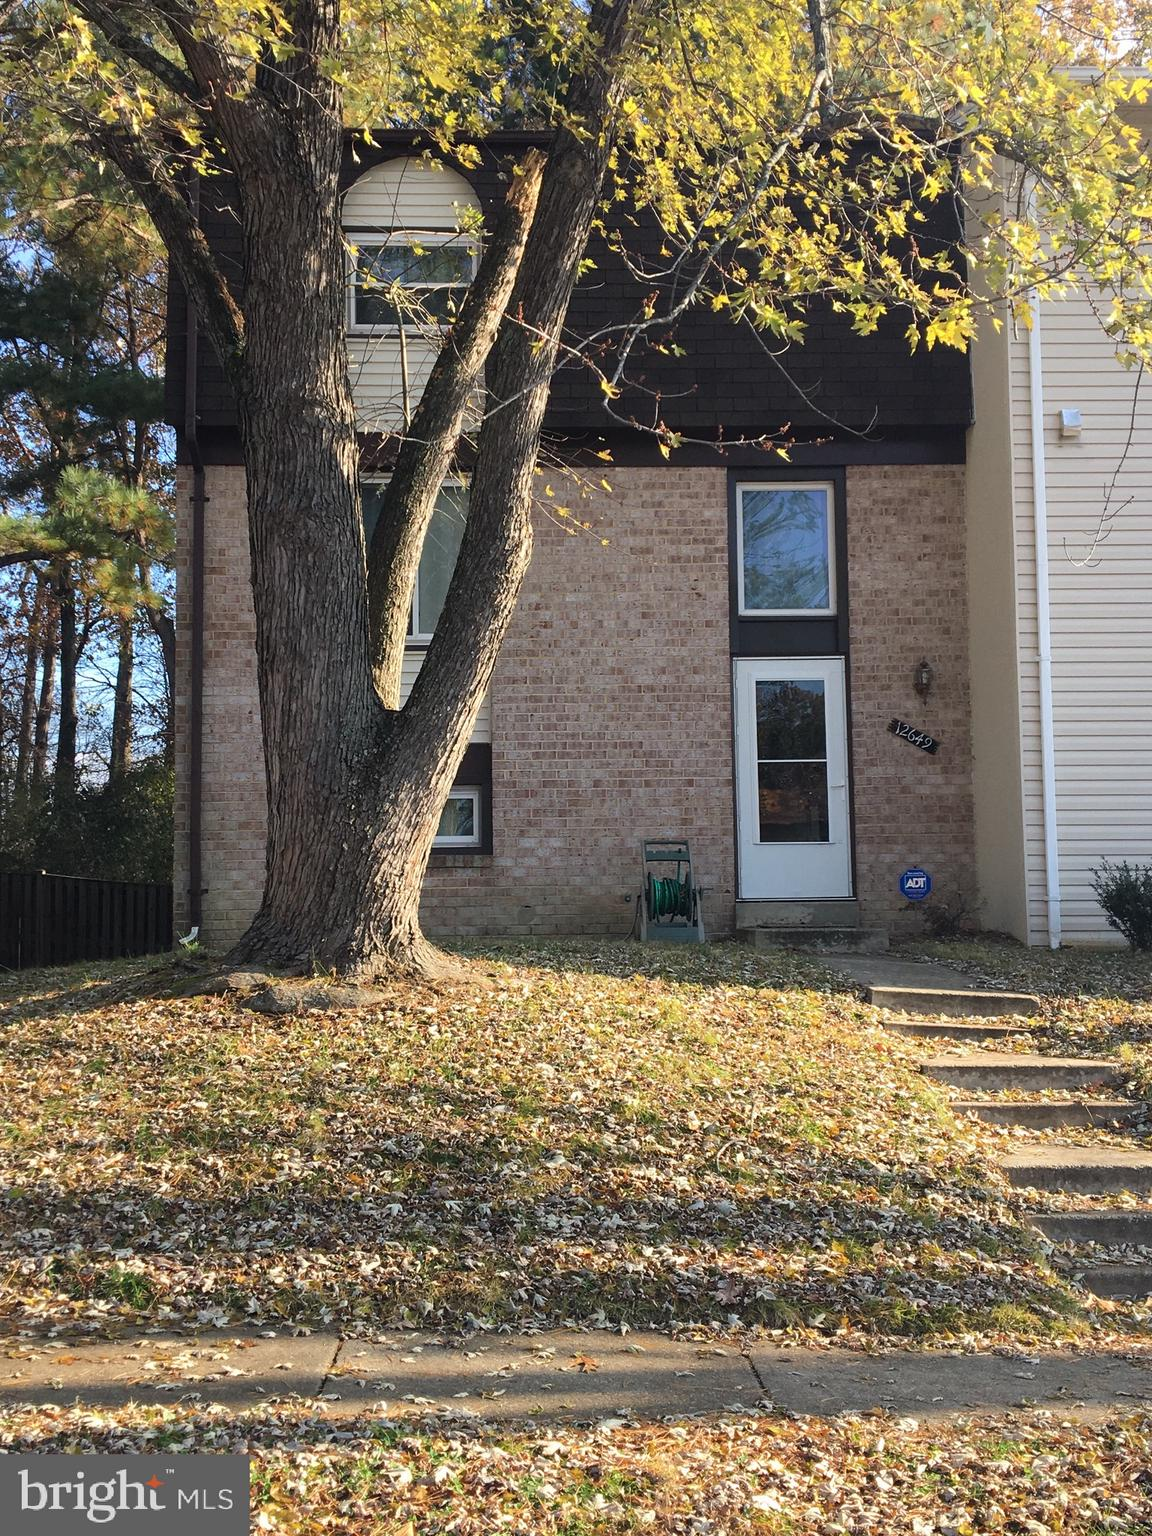 Lovely and cozy townhome in Lake Ridge with lots of updates. 2013 roof, Cherry Wood floors on the main level, new carpet in the upper floor and in the walkout basement, Kitchen was renovated in 2013, has cherry wood cabinets and tile flooring.  Features 3 Bedrooms upstairs and a room in the basement that can be used for an office or bedroom, full of natural light. Fenced large patio. Well kept!  Close to main road and shops! Pictures will be updated by Sunday. Agent related to owner